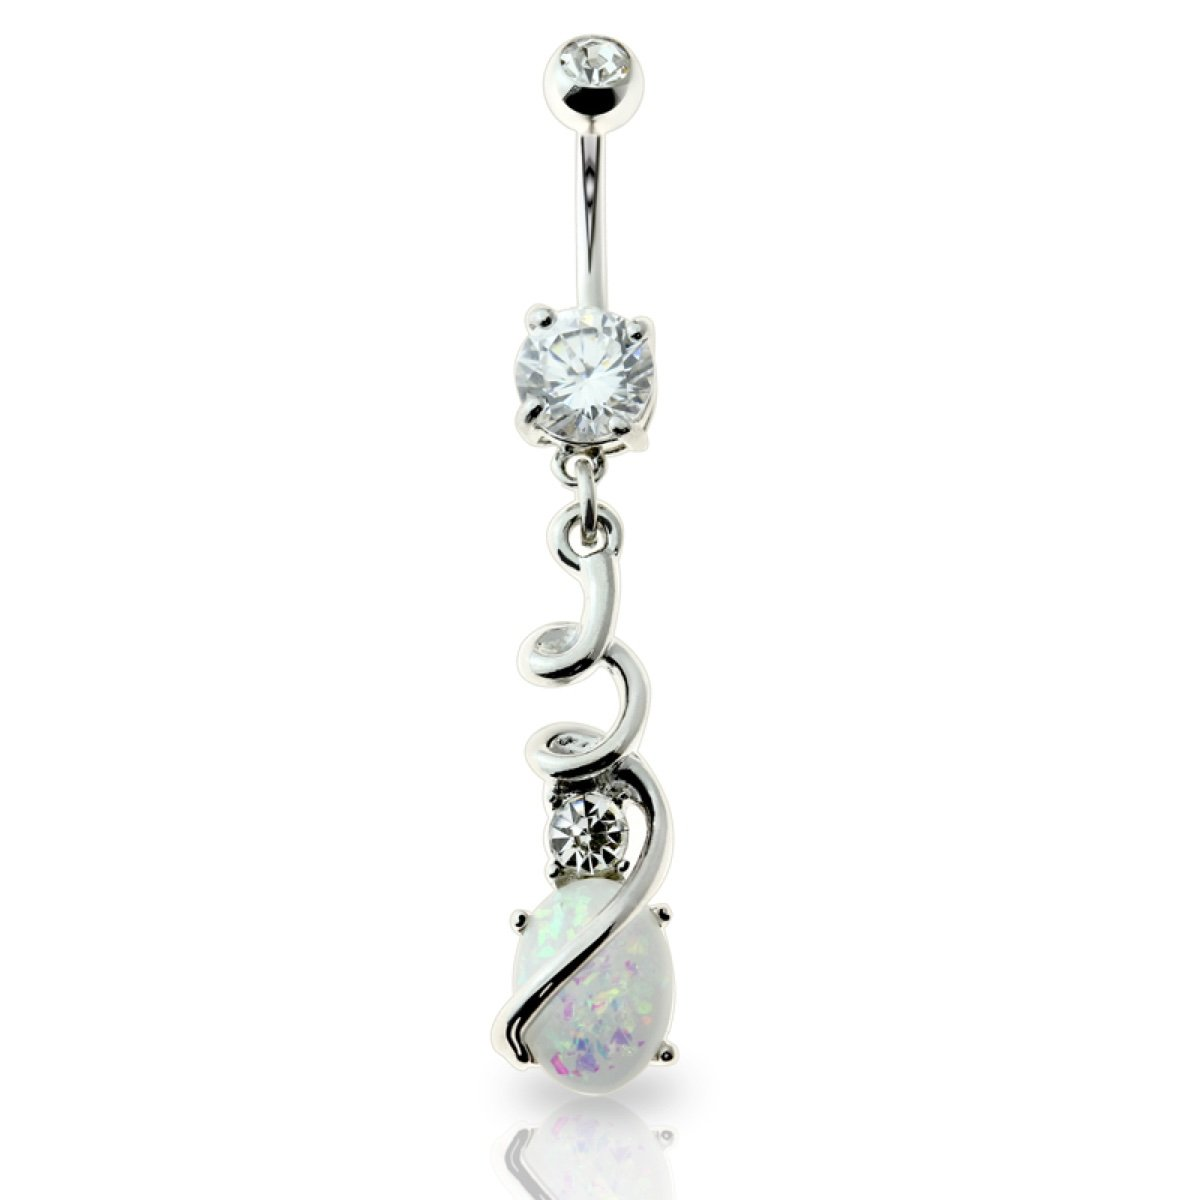 1.6mm Jewelry by Sweet Pea SGSS Curv BB w Matching Top Bottom /& Dangle Charms 14G ,13//32 1